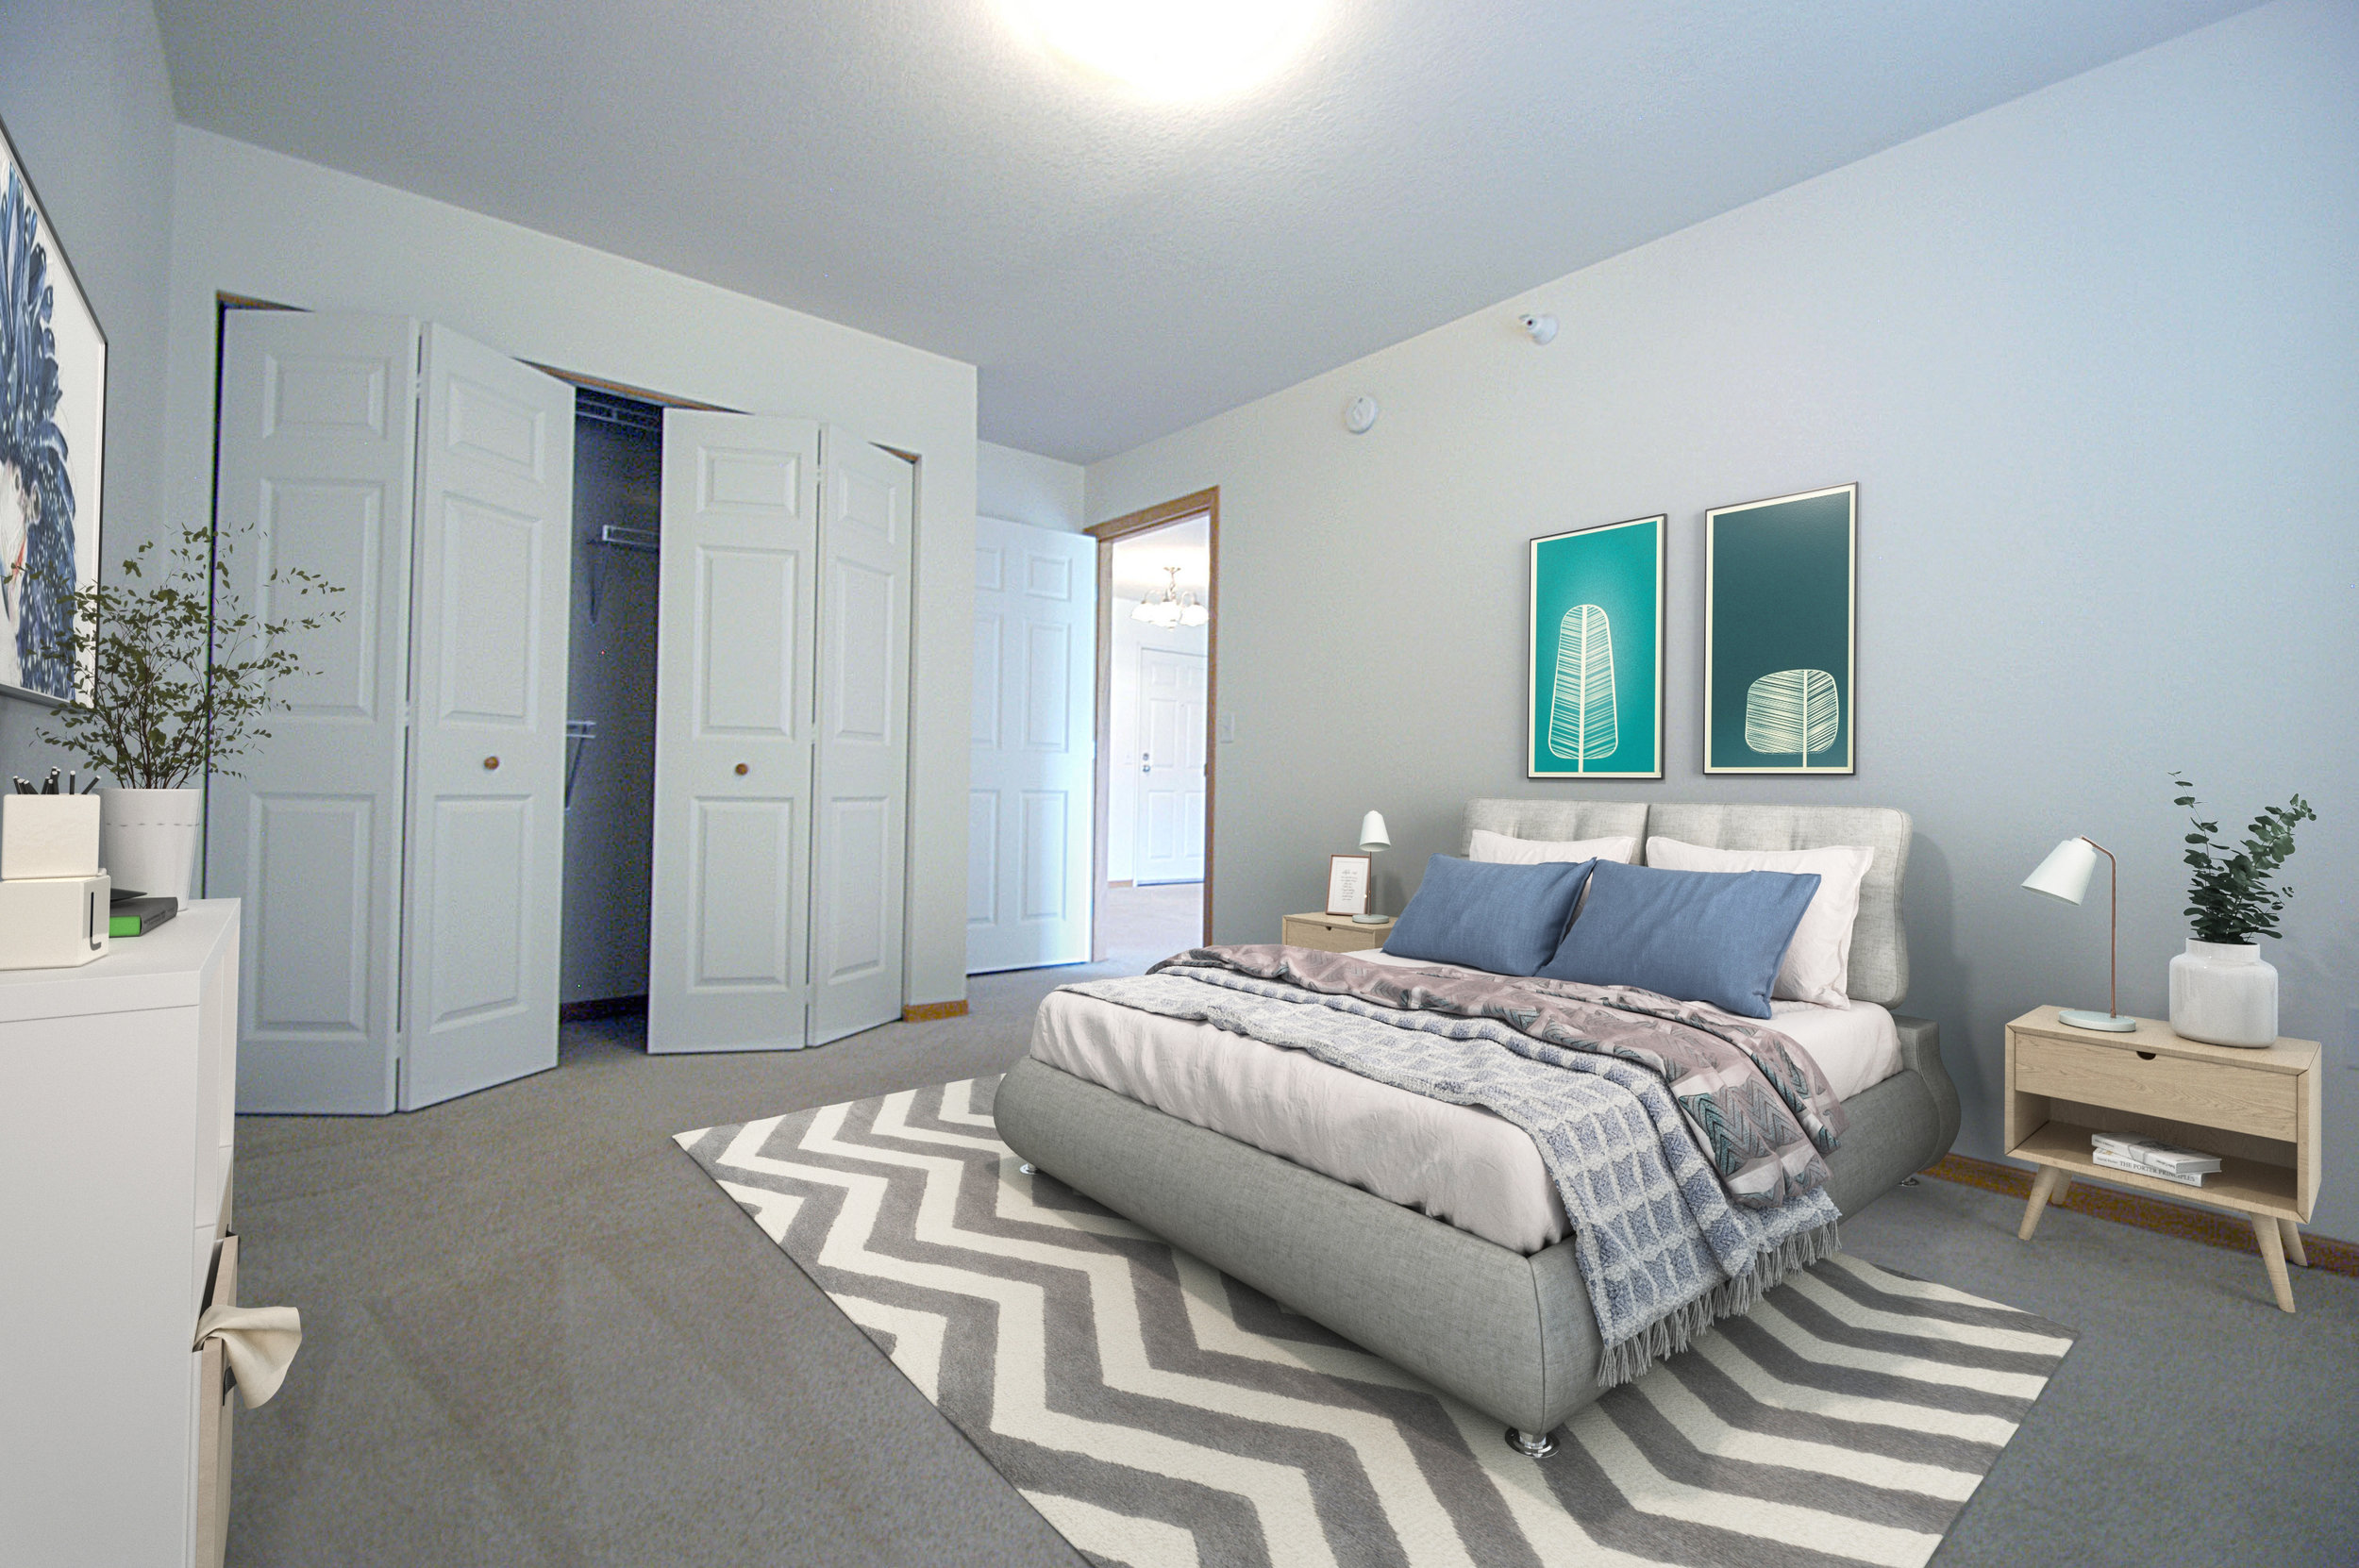 Generous Sized Bedrooms and Closet Space